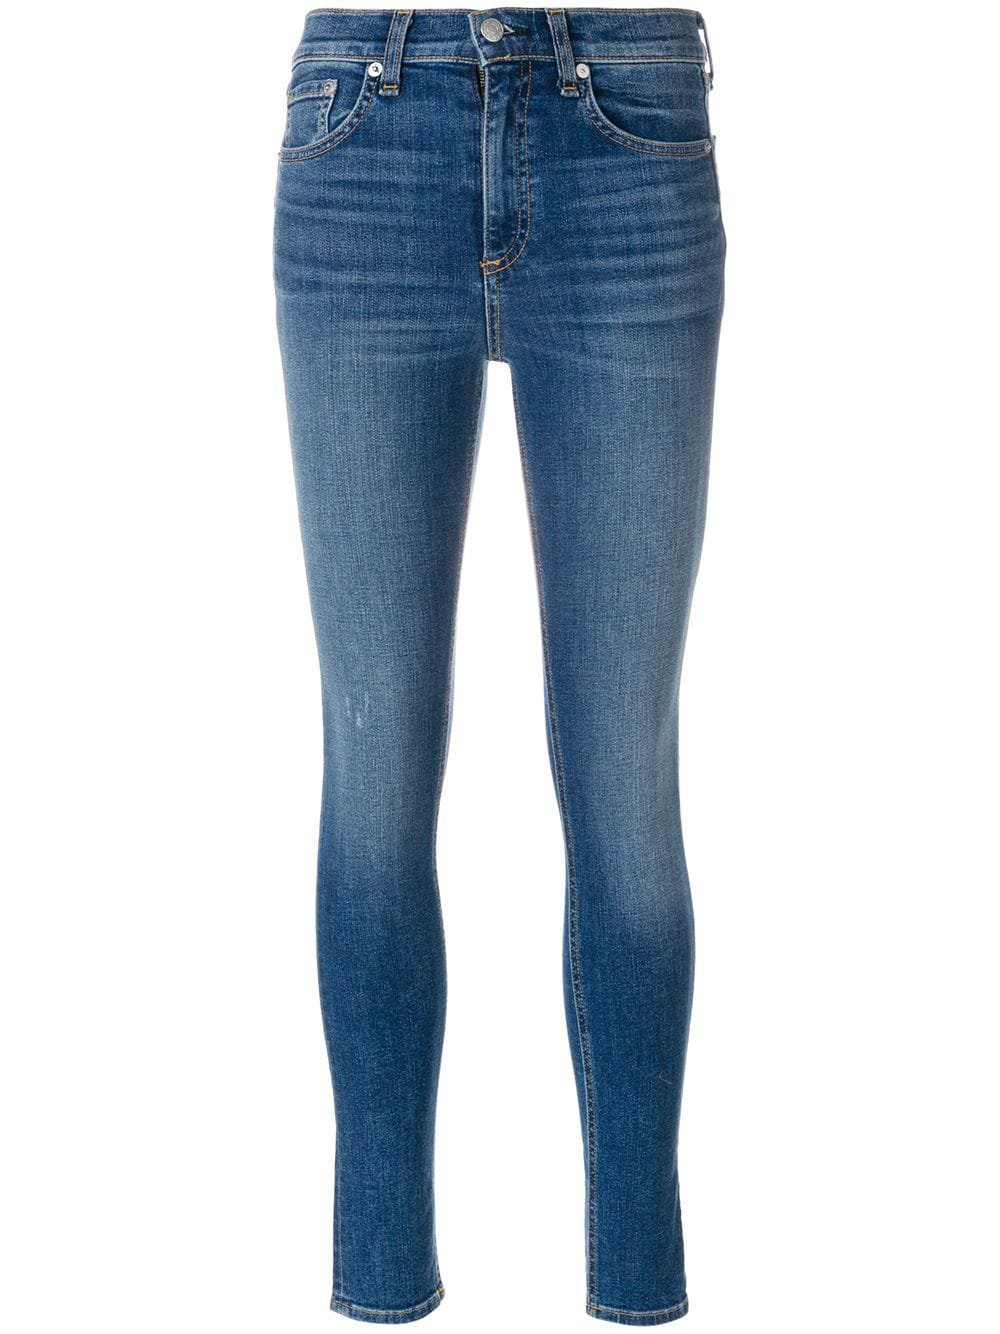 Rag & Bone /Jean High Rise Skinny Jeans - Farfetch